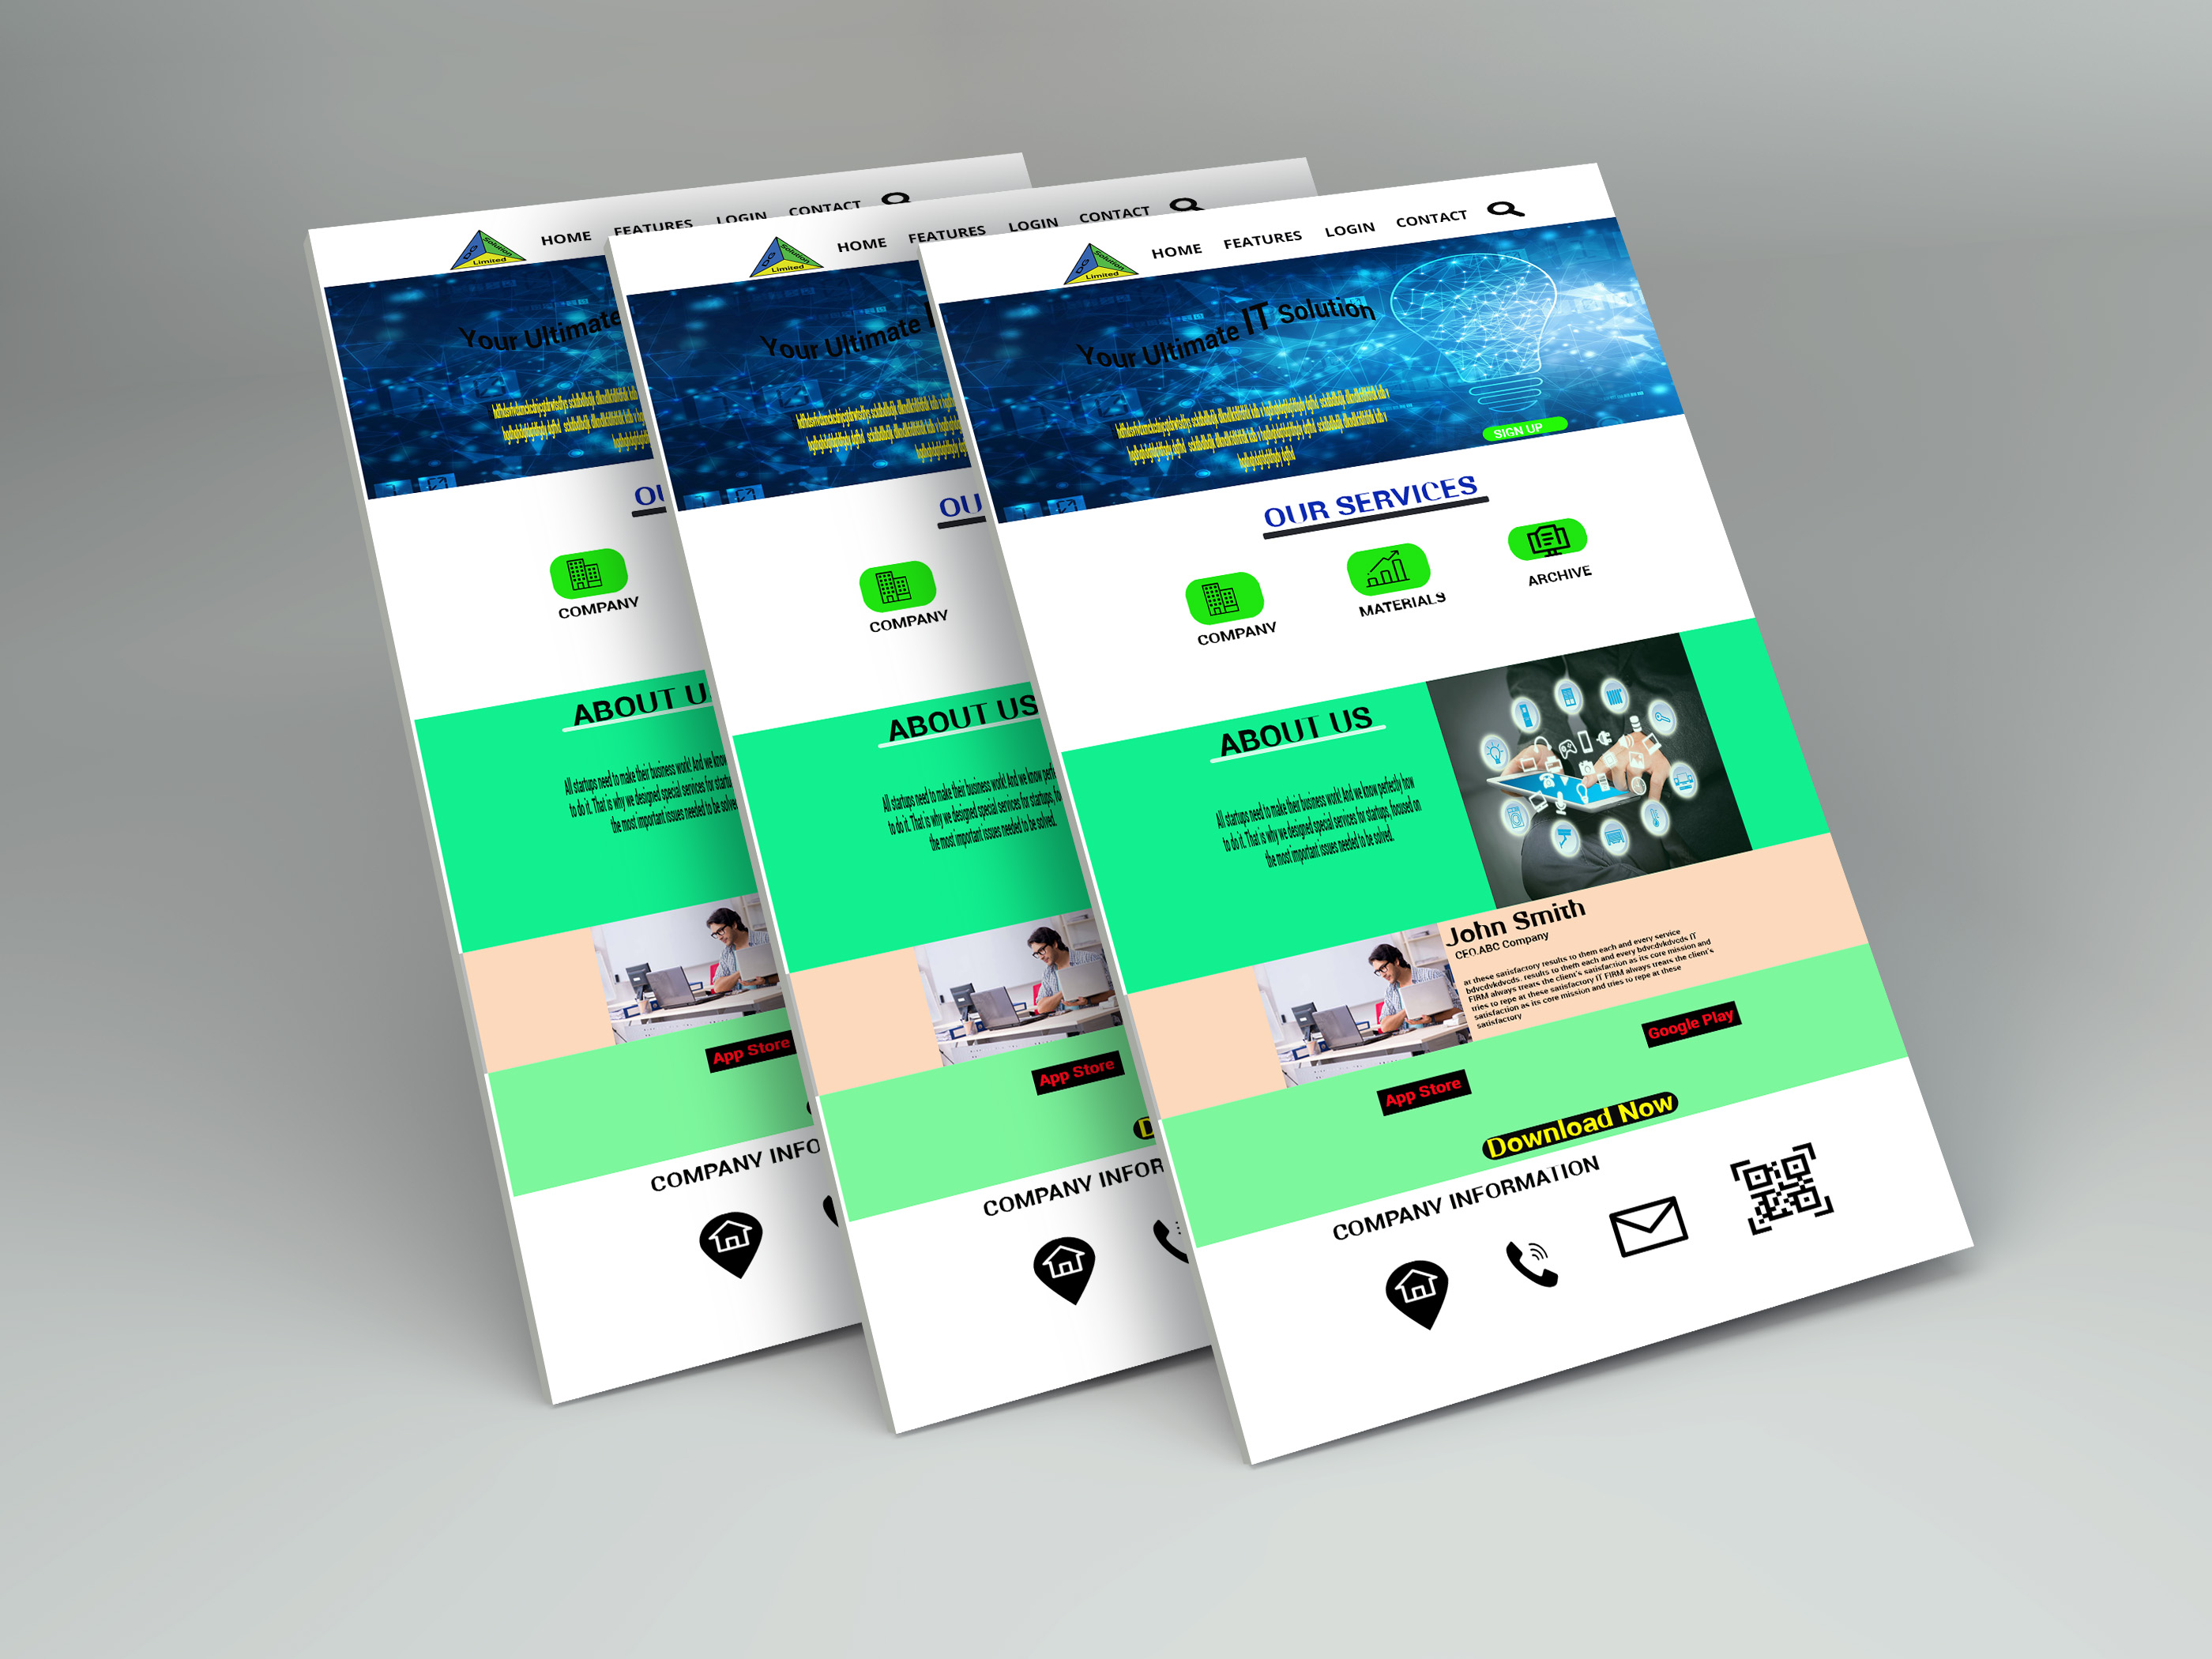 I can create An Awesome Web page template for your dream project